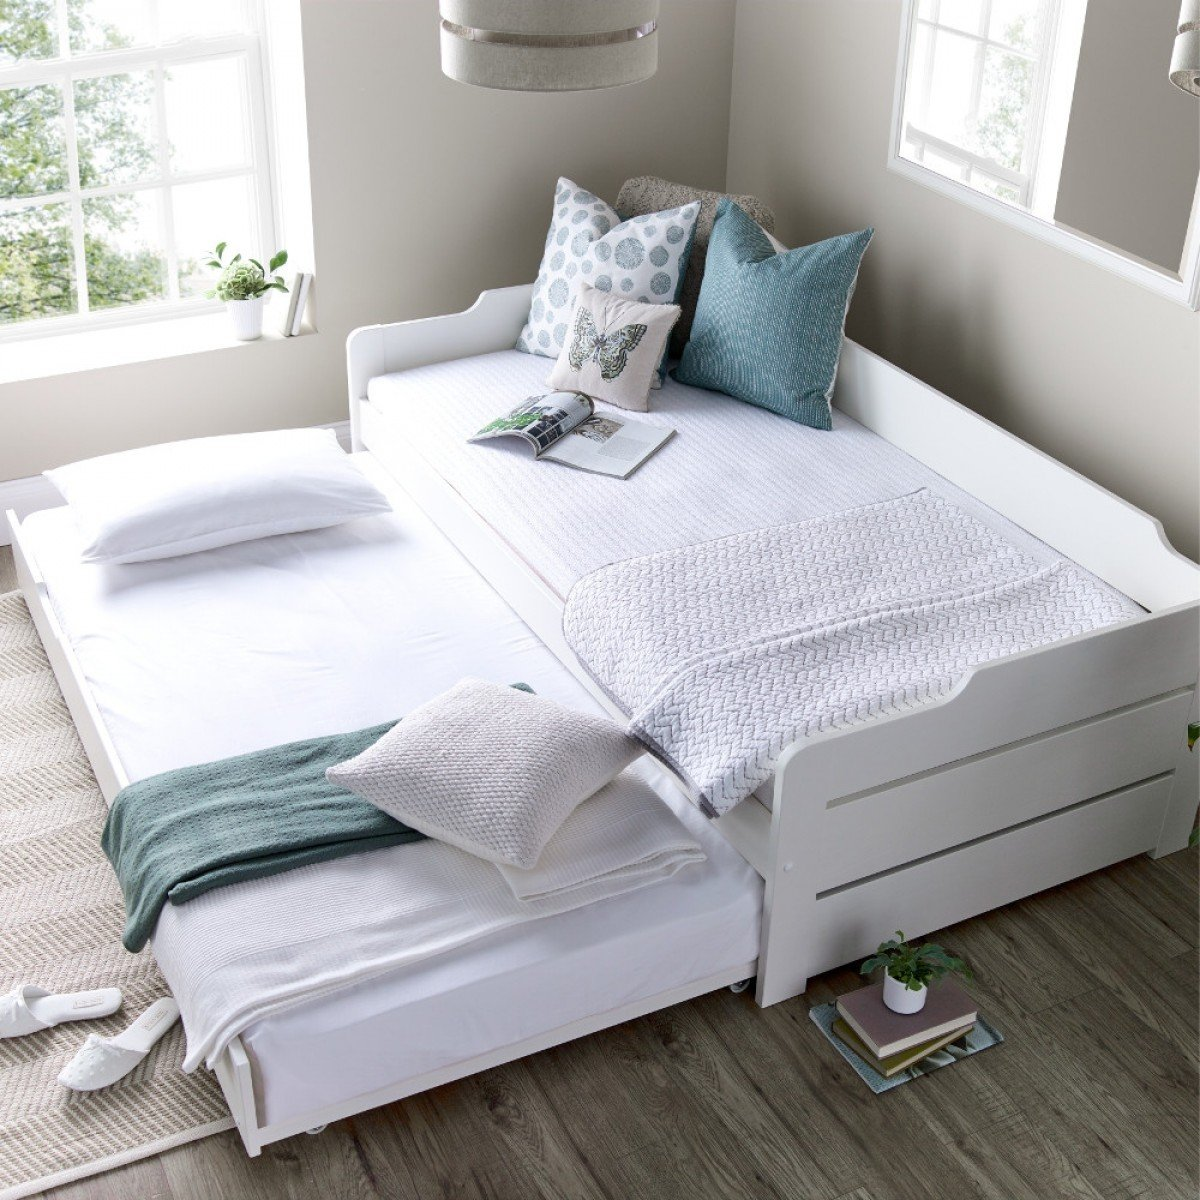 Copella White Wooden Day Bed with Guest Bed